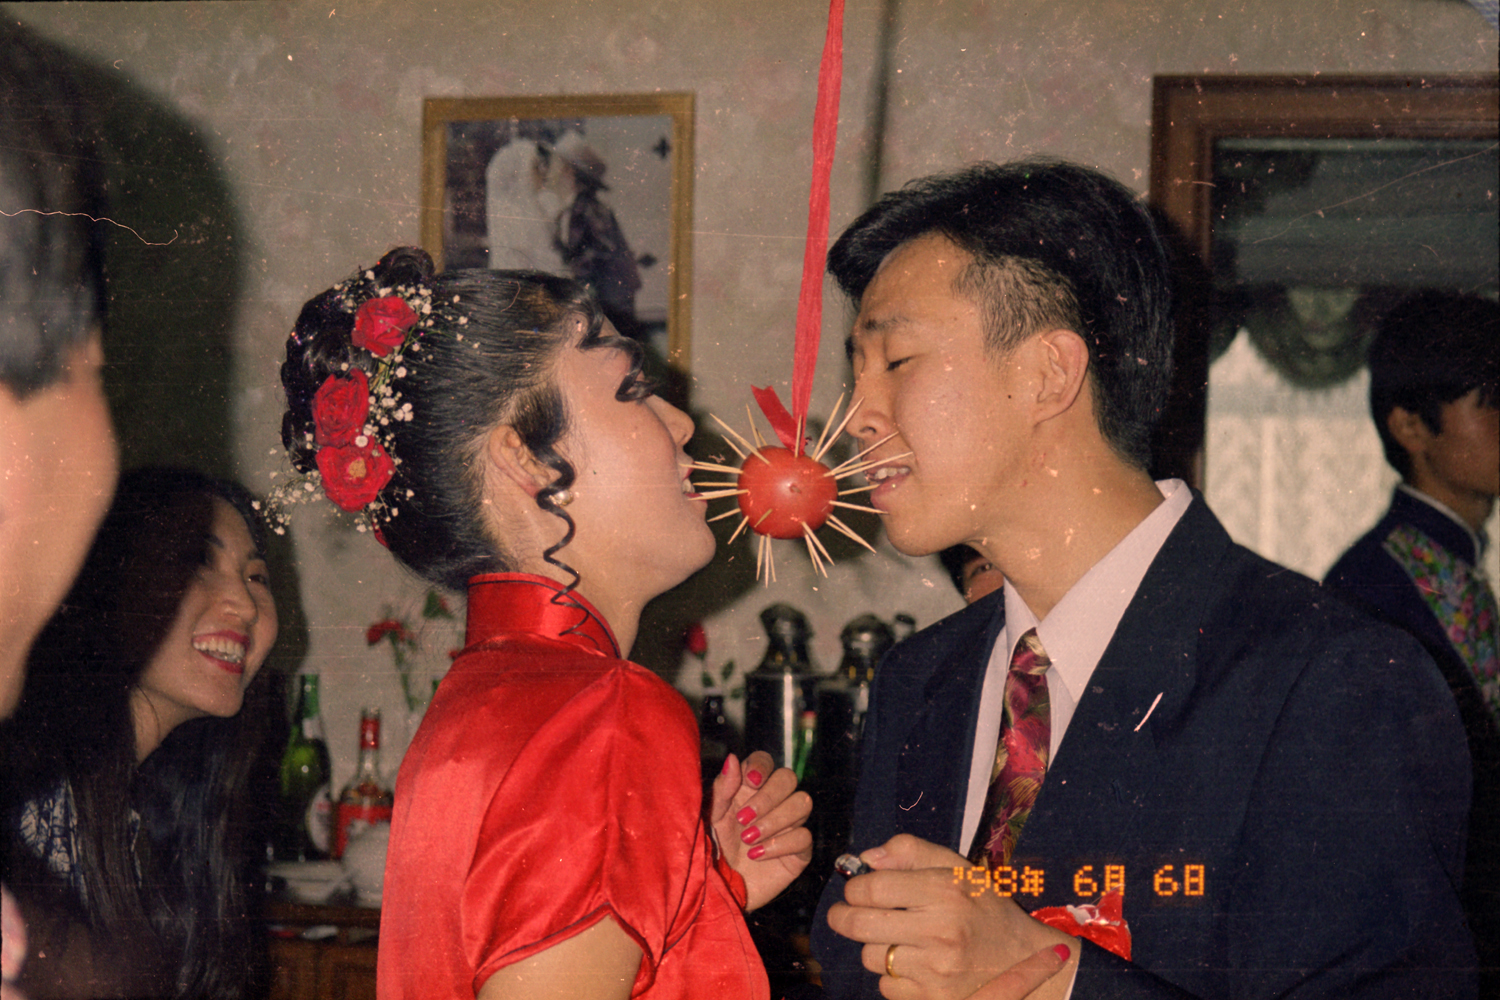 thomas-sauvin-beijing-silvermine-until-death-do-us-part-photography-of-china-5.jpg